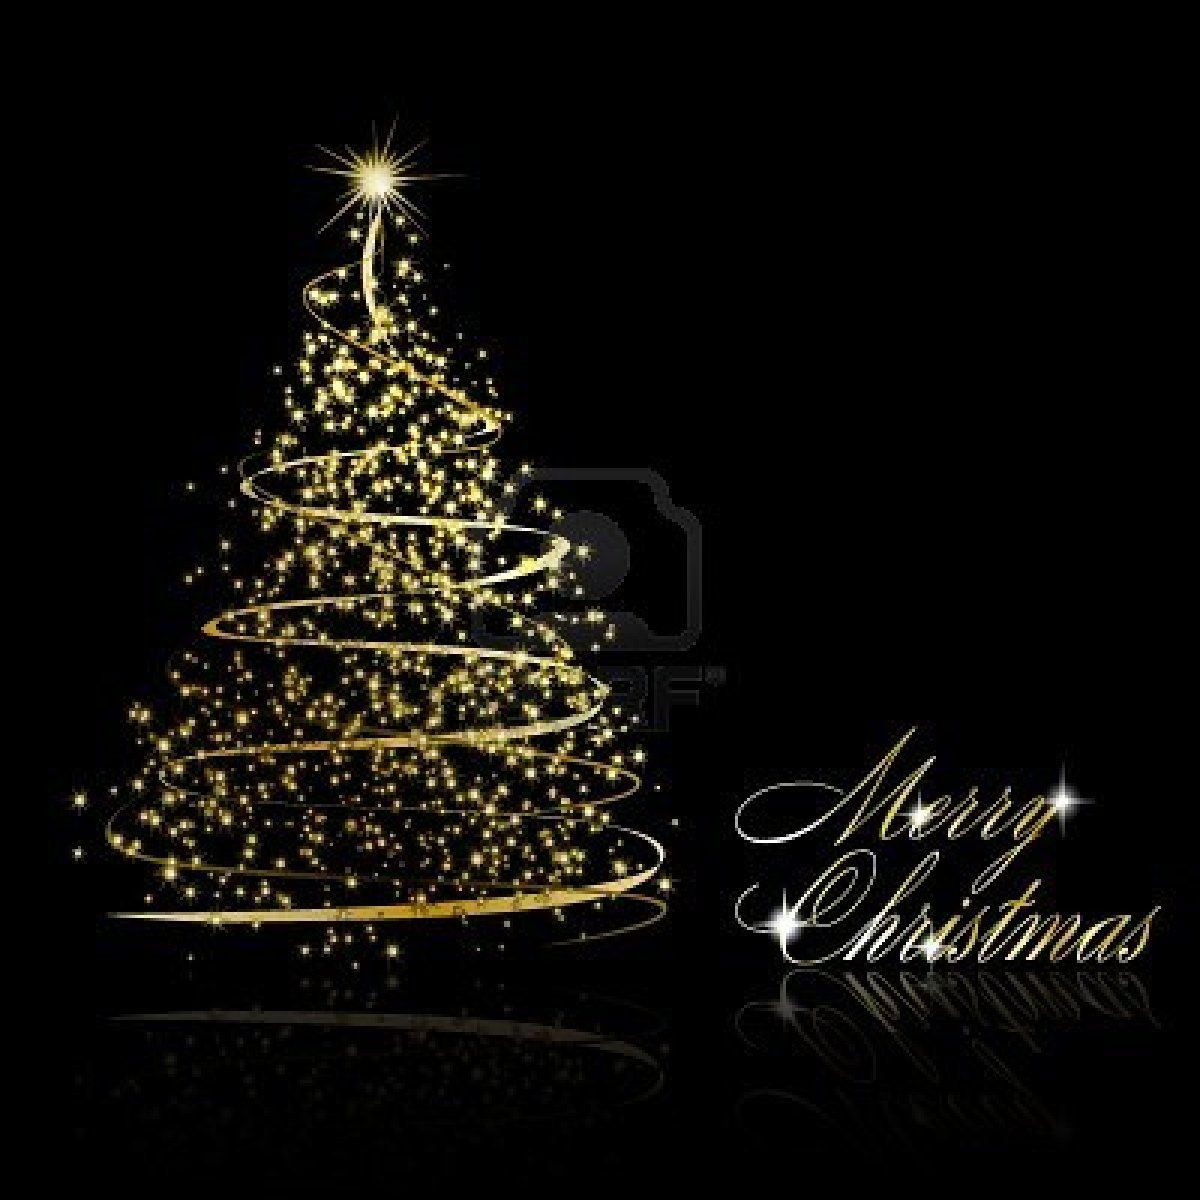 Abstract Golden Christmas Tree On Black Background Illustration Beautiful Christmas Decorations Christmas Tree Christmas Stock Photos